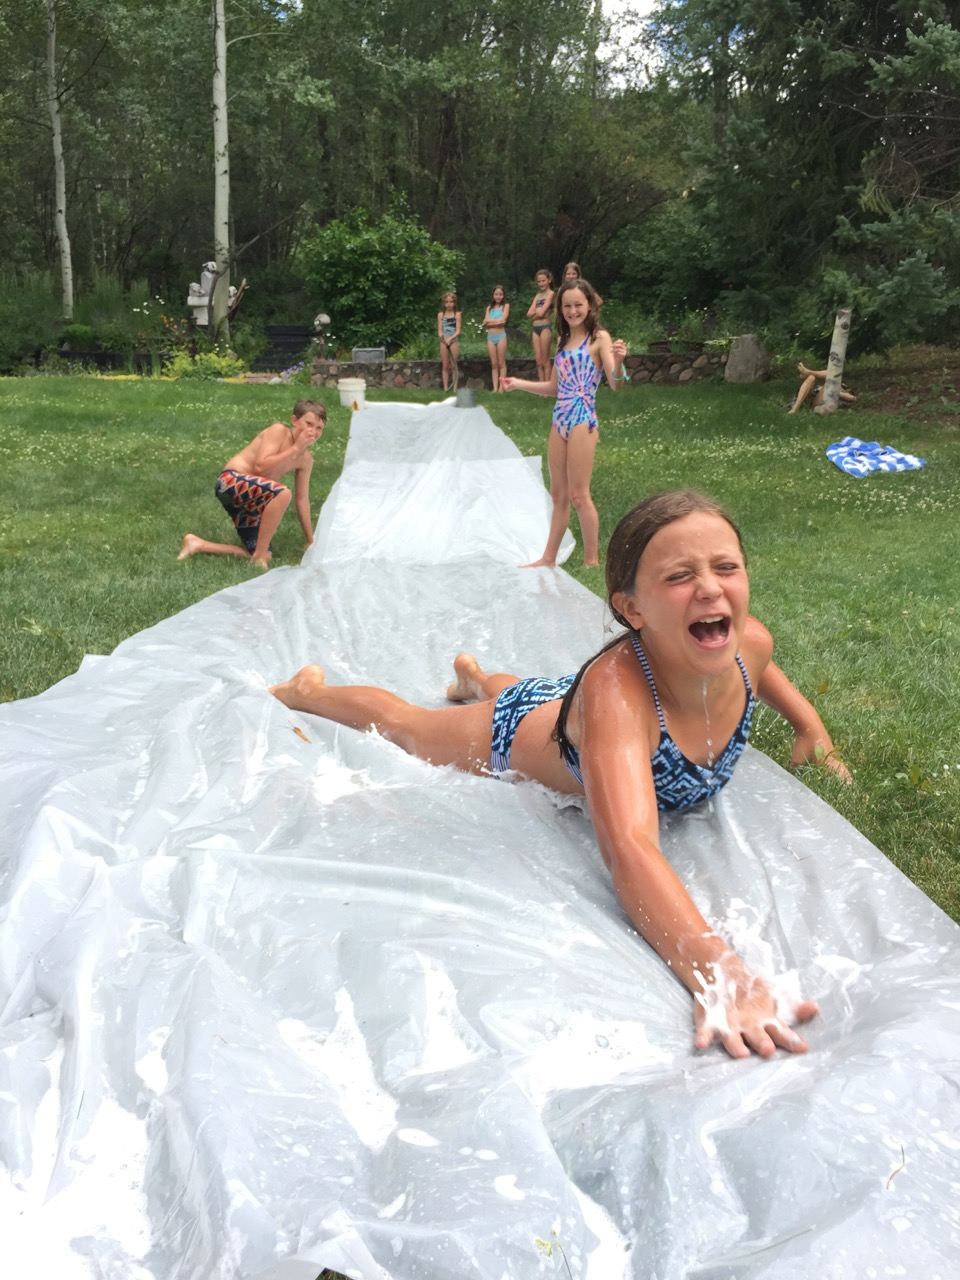 slip slidin' away...